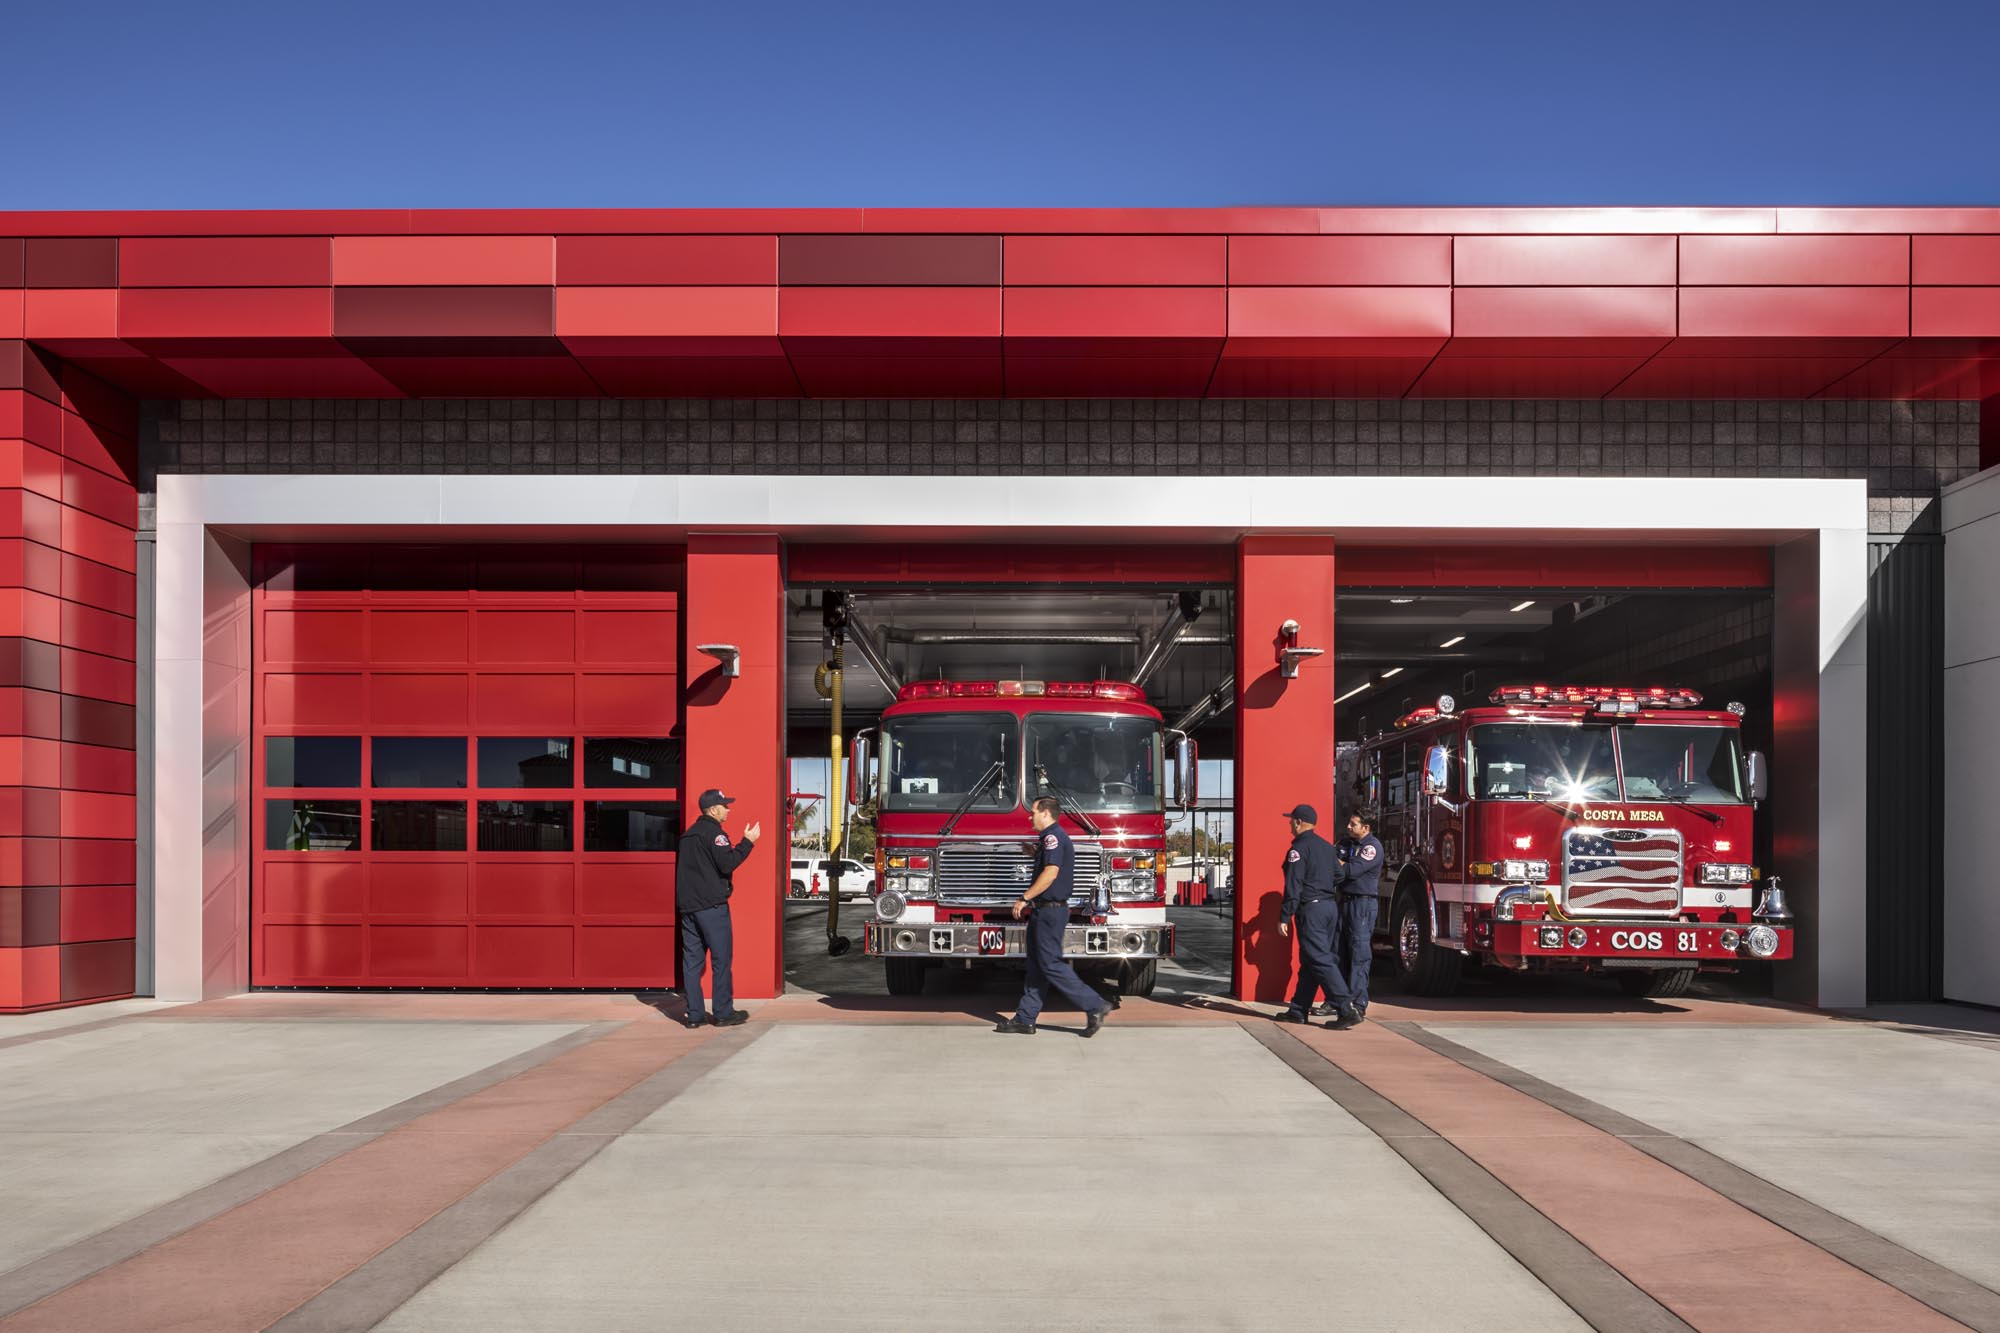 Costa-Mesa-Firestation07.jpg